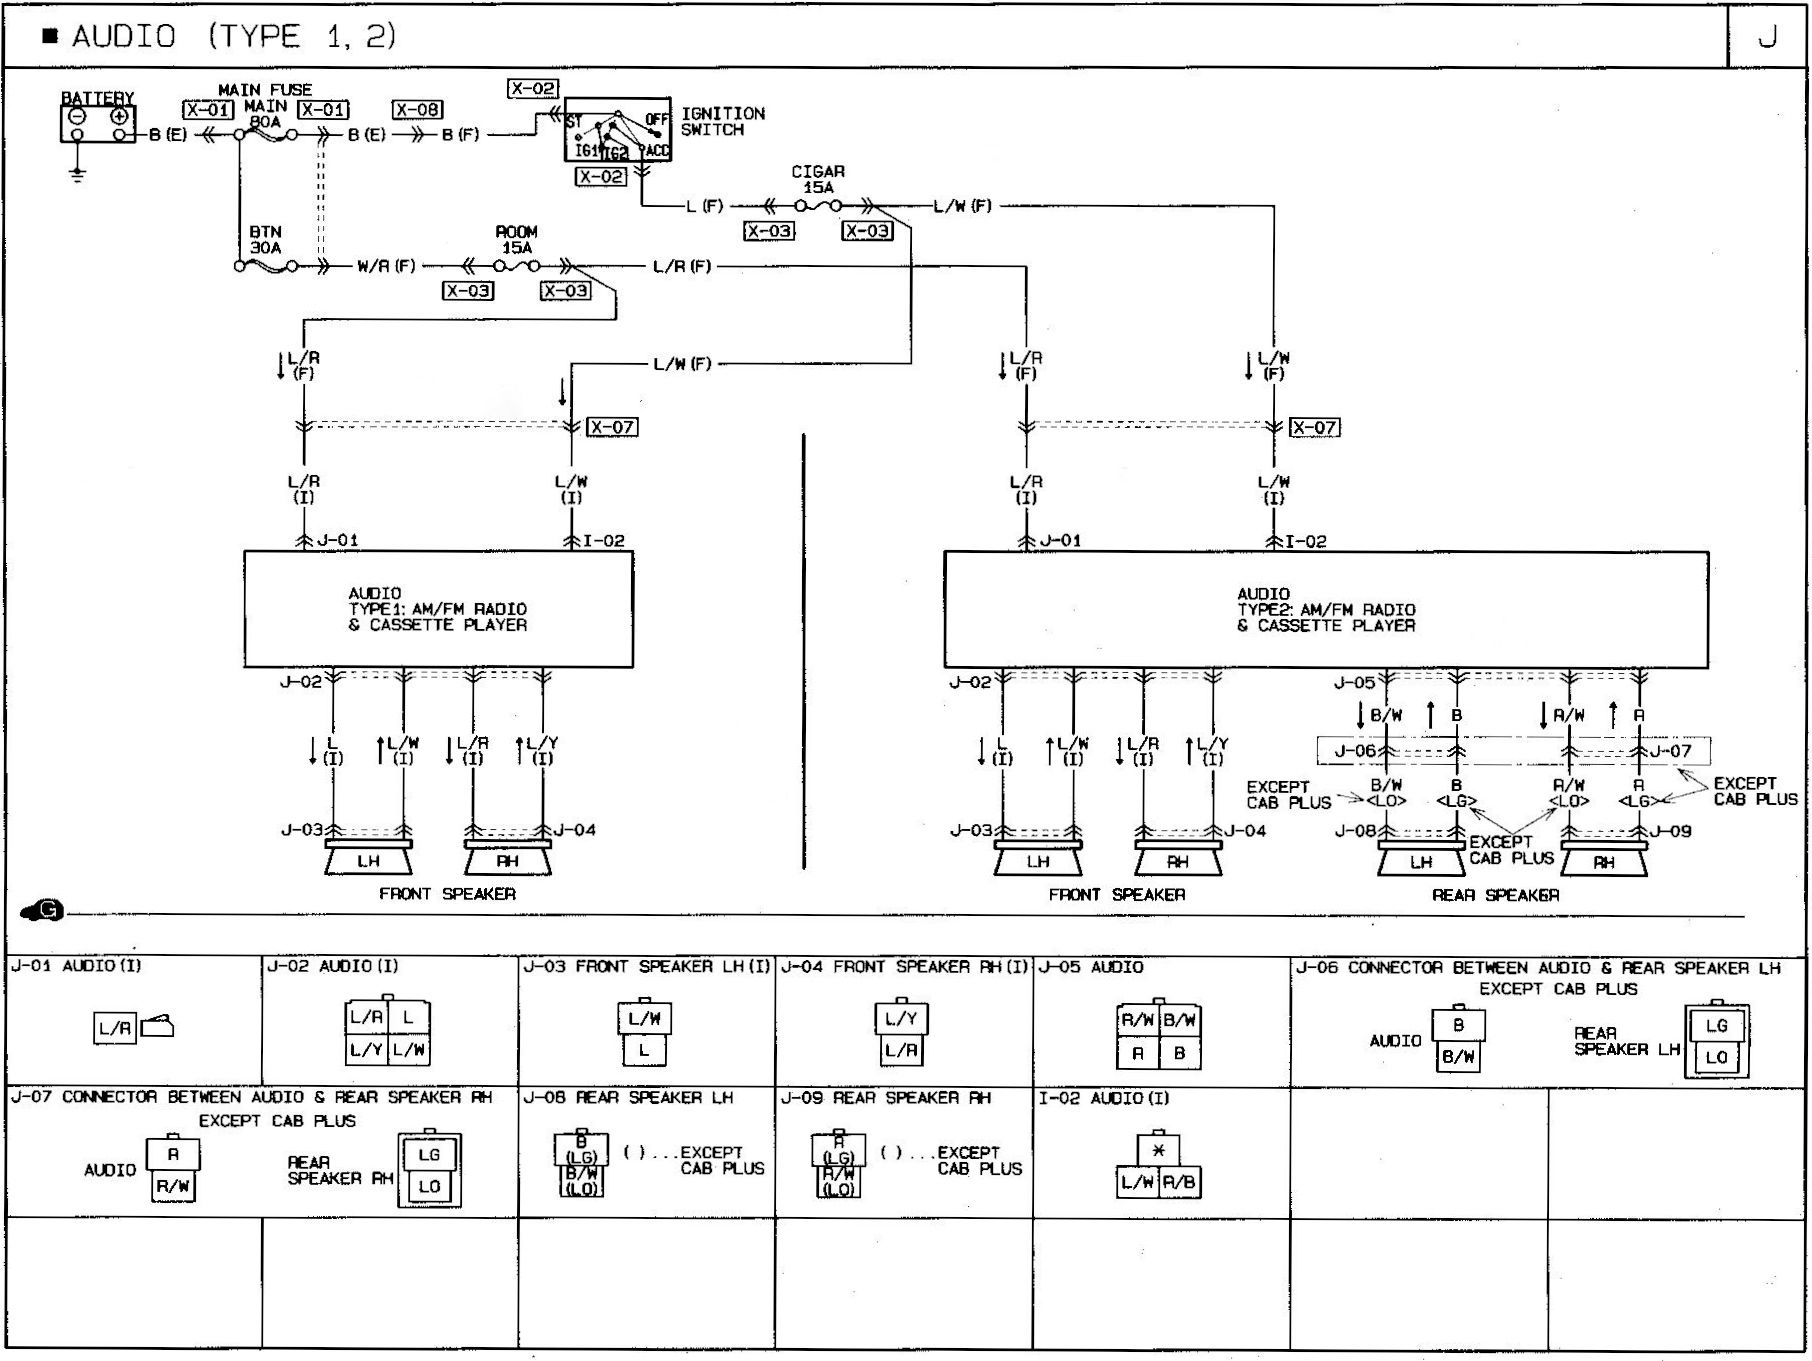 91 mazda b2200 wiring diagram - mdx fuse box diagram -  podewiring.tukune.jeanjaures37.fr  wiring diagram resource